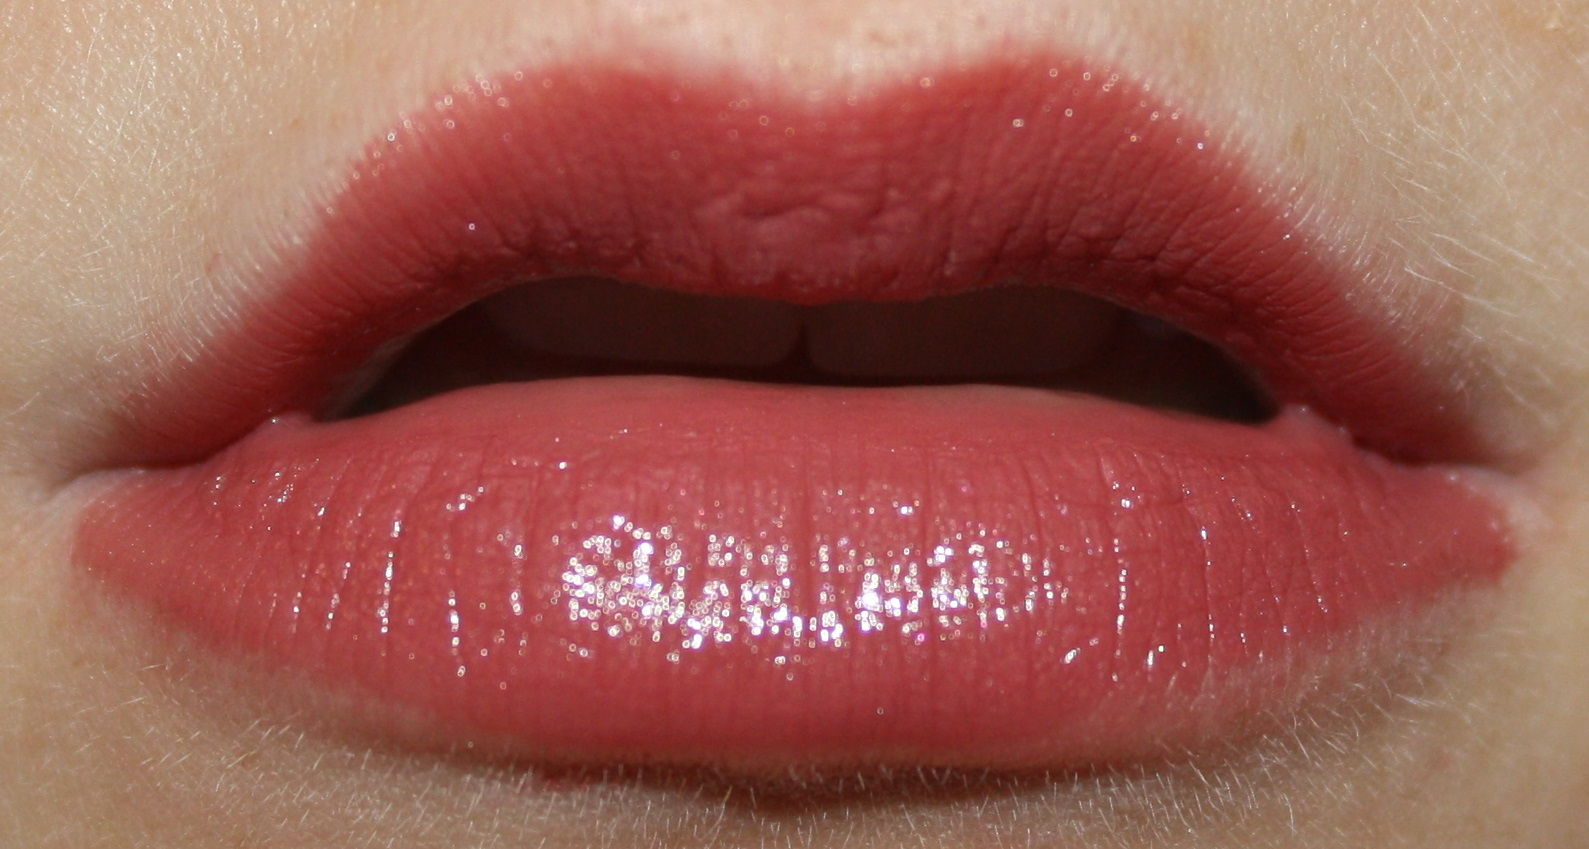 Beauty marker chanel rouge coco lipsticks review and swatches - Chanel Rouge Coco Lipstick Mademoiselle Swatch